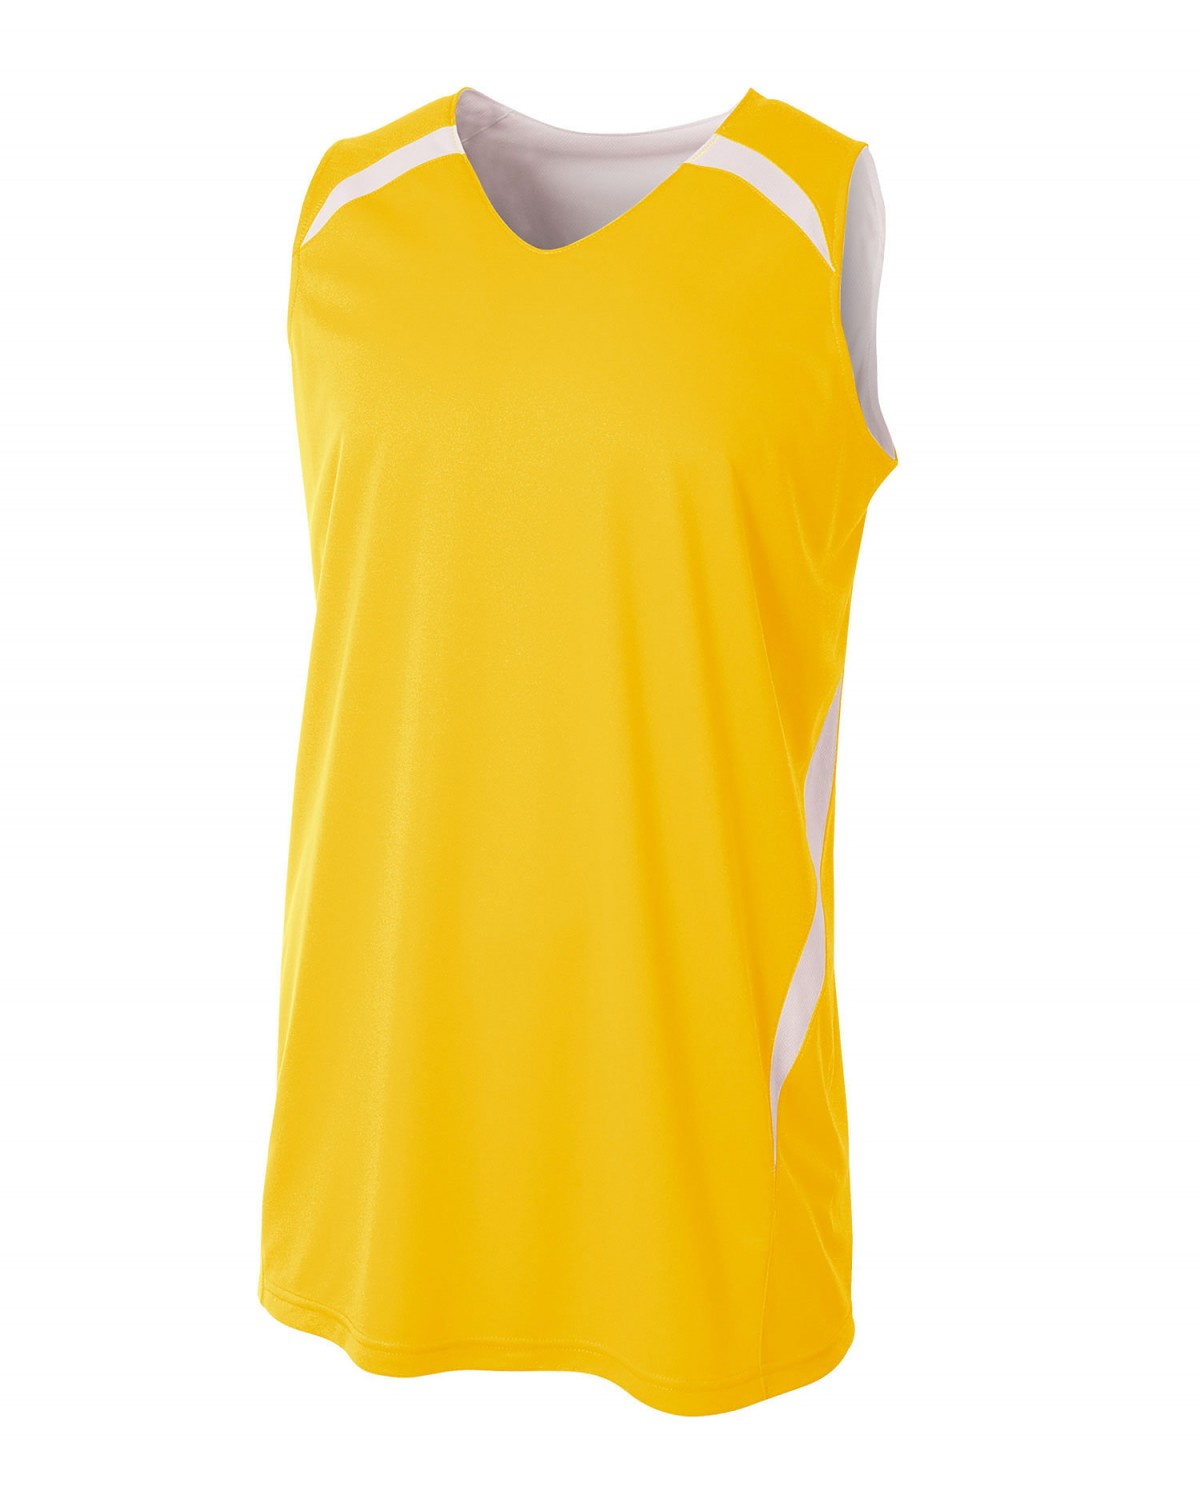 605P Alleson Athletic ROYAL